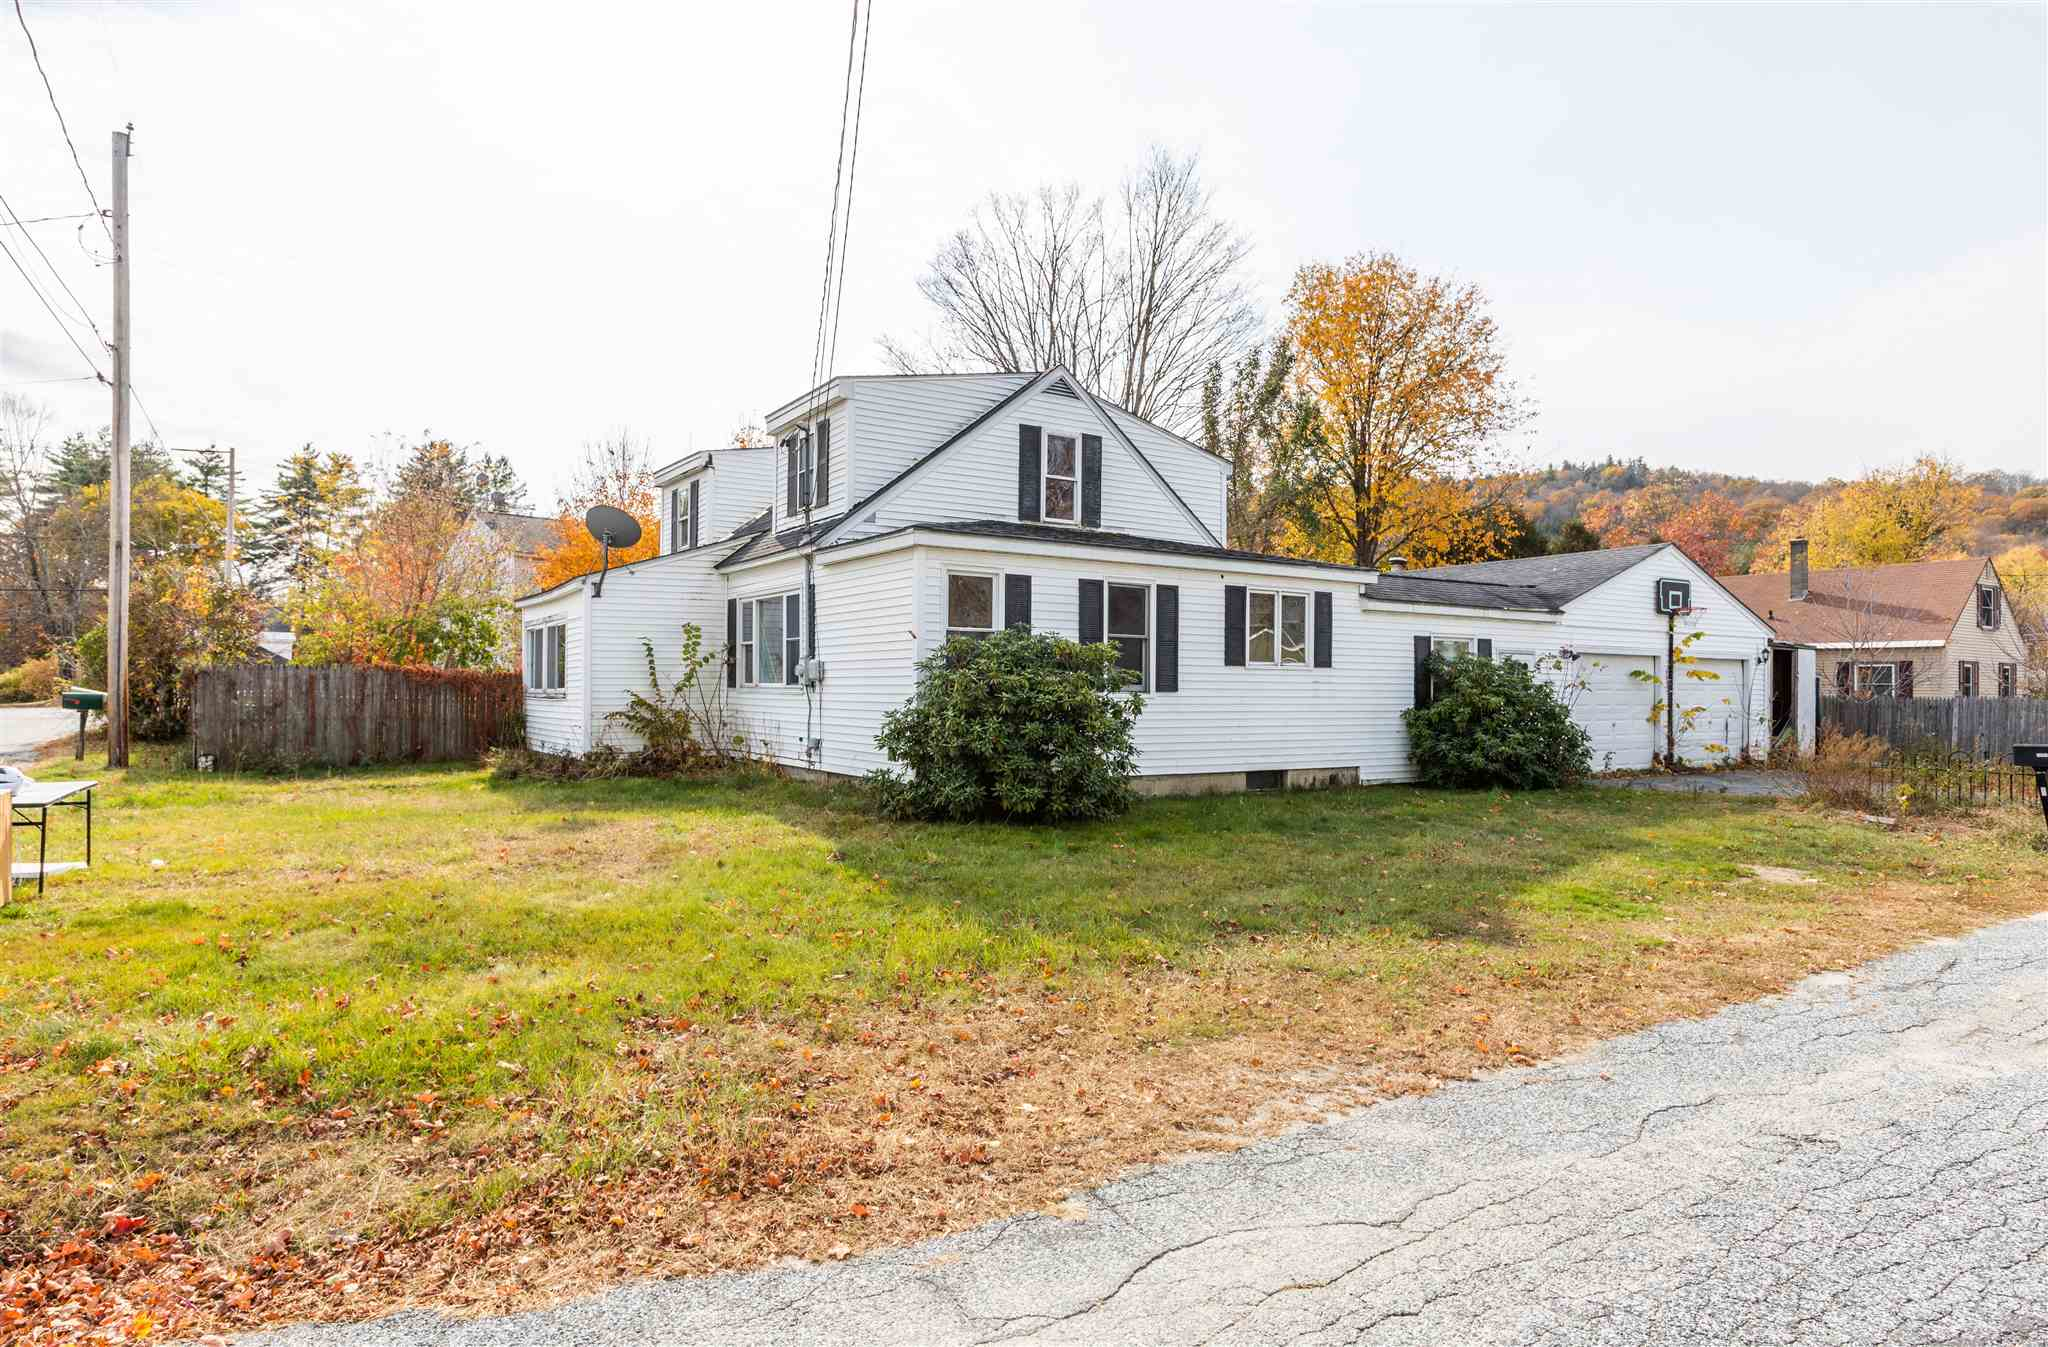 Claremont NH 03765 Home for sale $List Price is $129,900